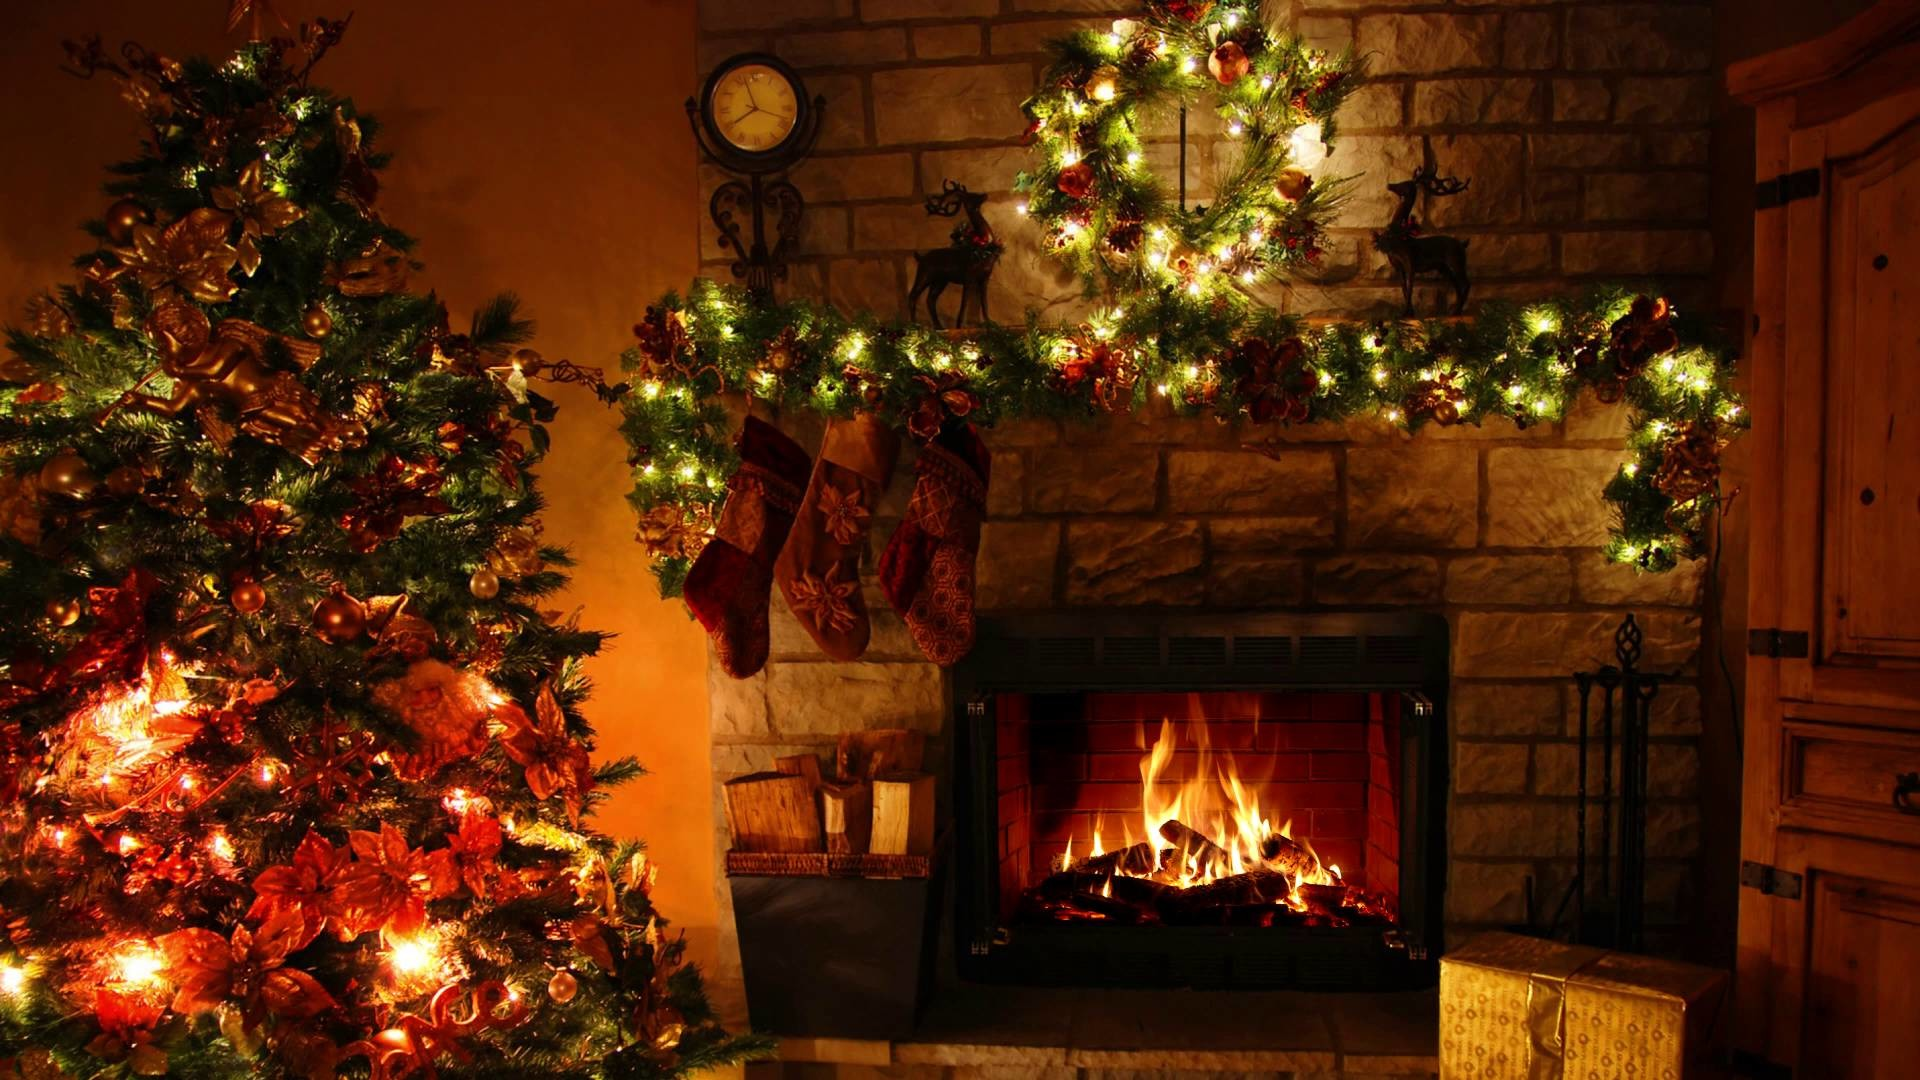 Fireplace Screens Tree Design Christmas Fireplace Background ①